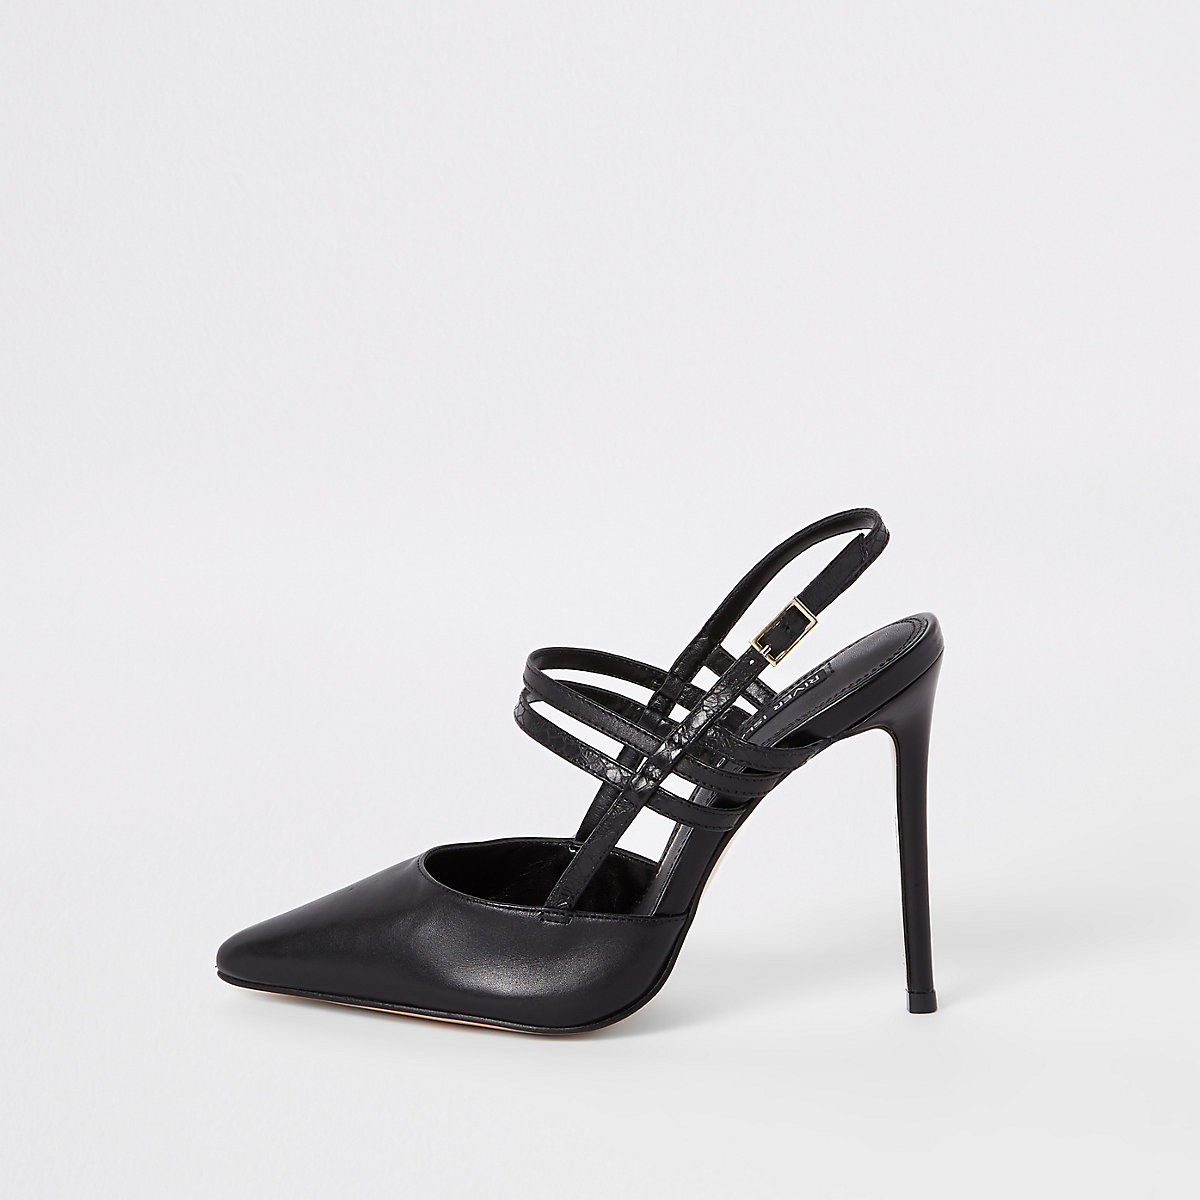 Black leather strappy pumps